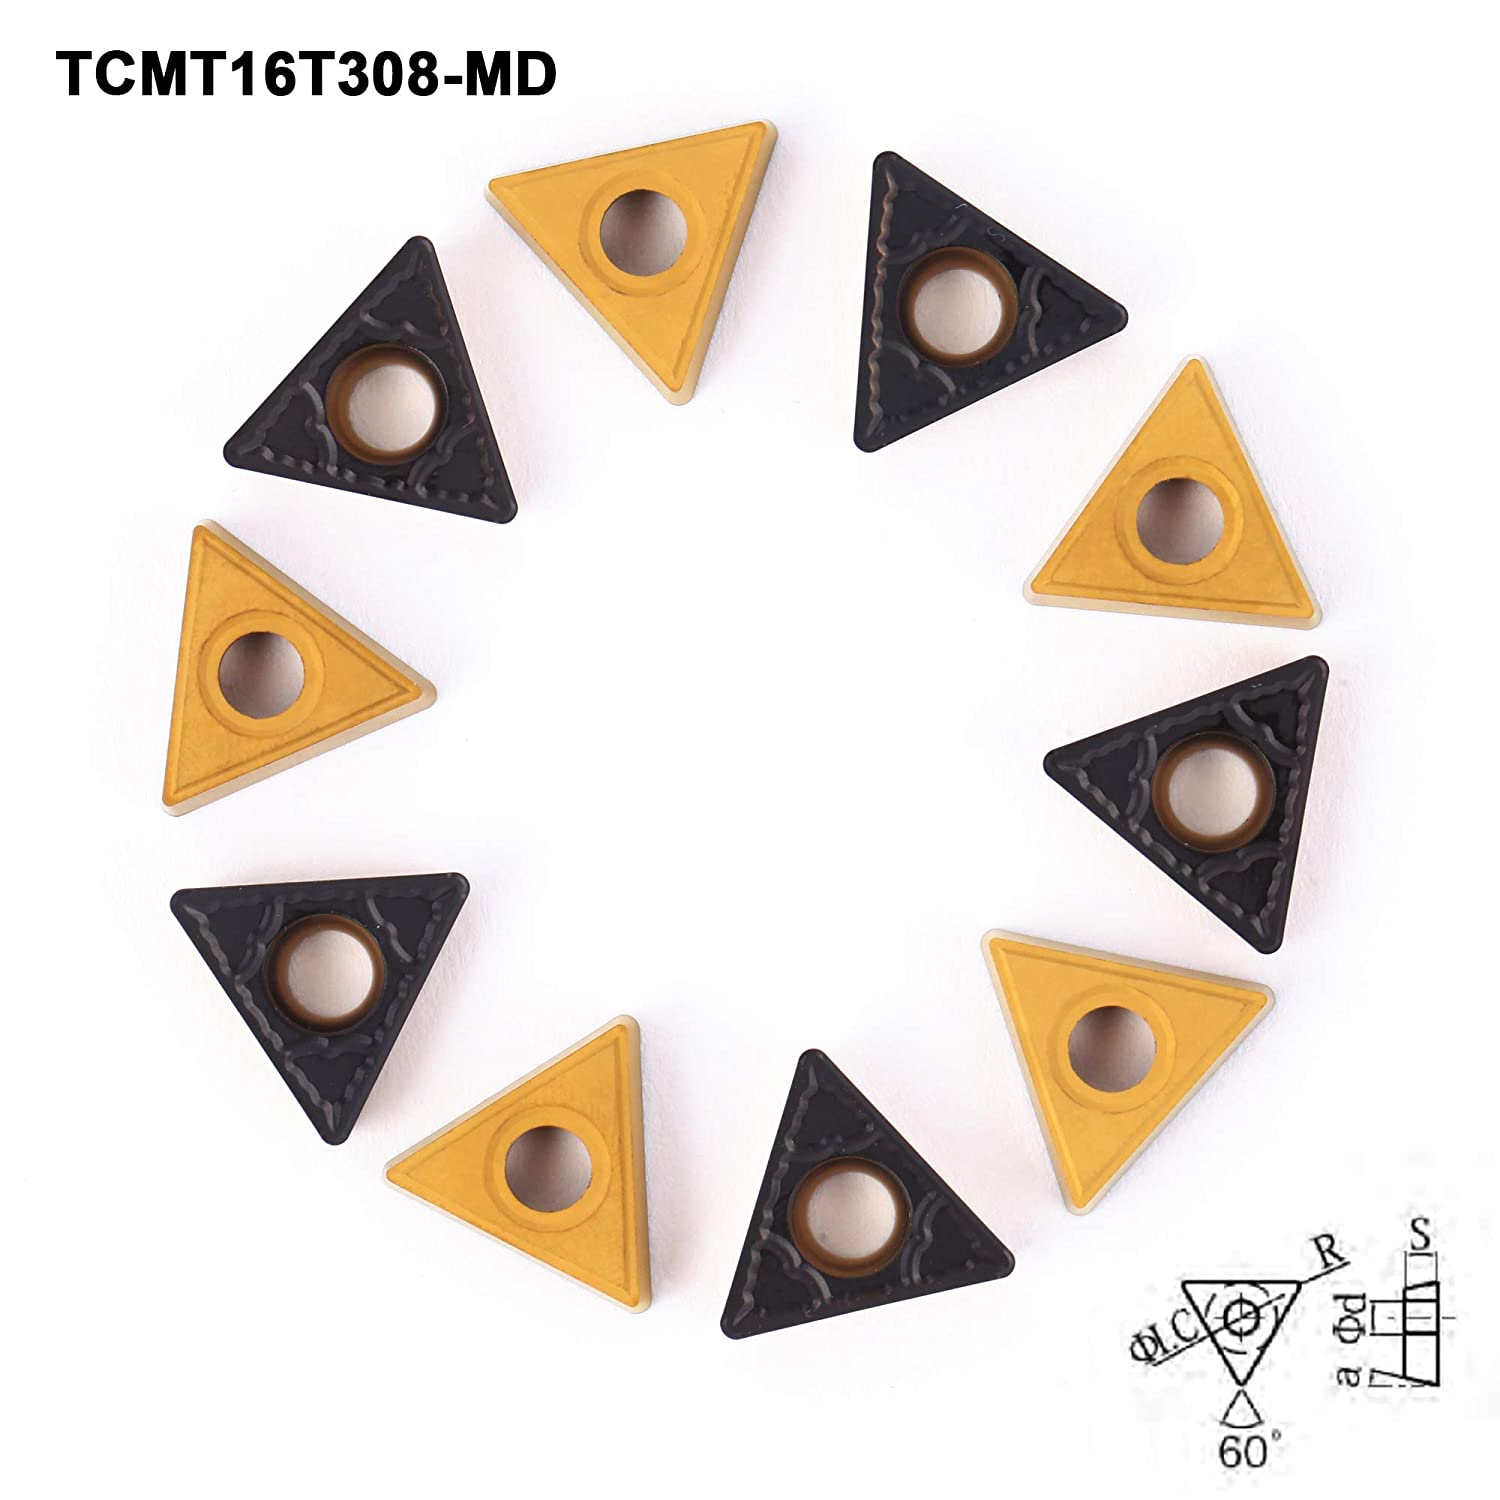 TCMT16T308 for Turning Cutting Tools 10 PCS FomaSP Carbide Inserts for Steel TCMT32.52